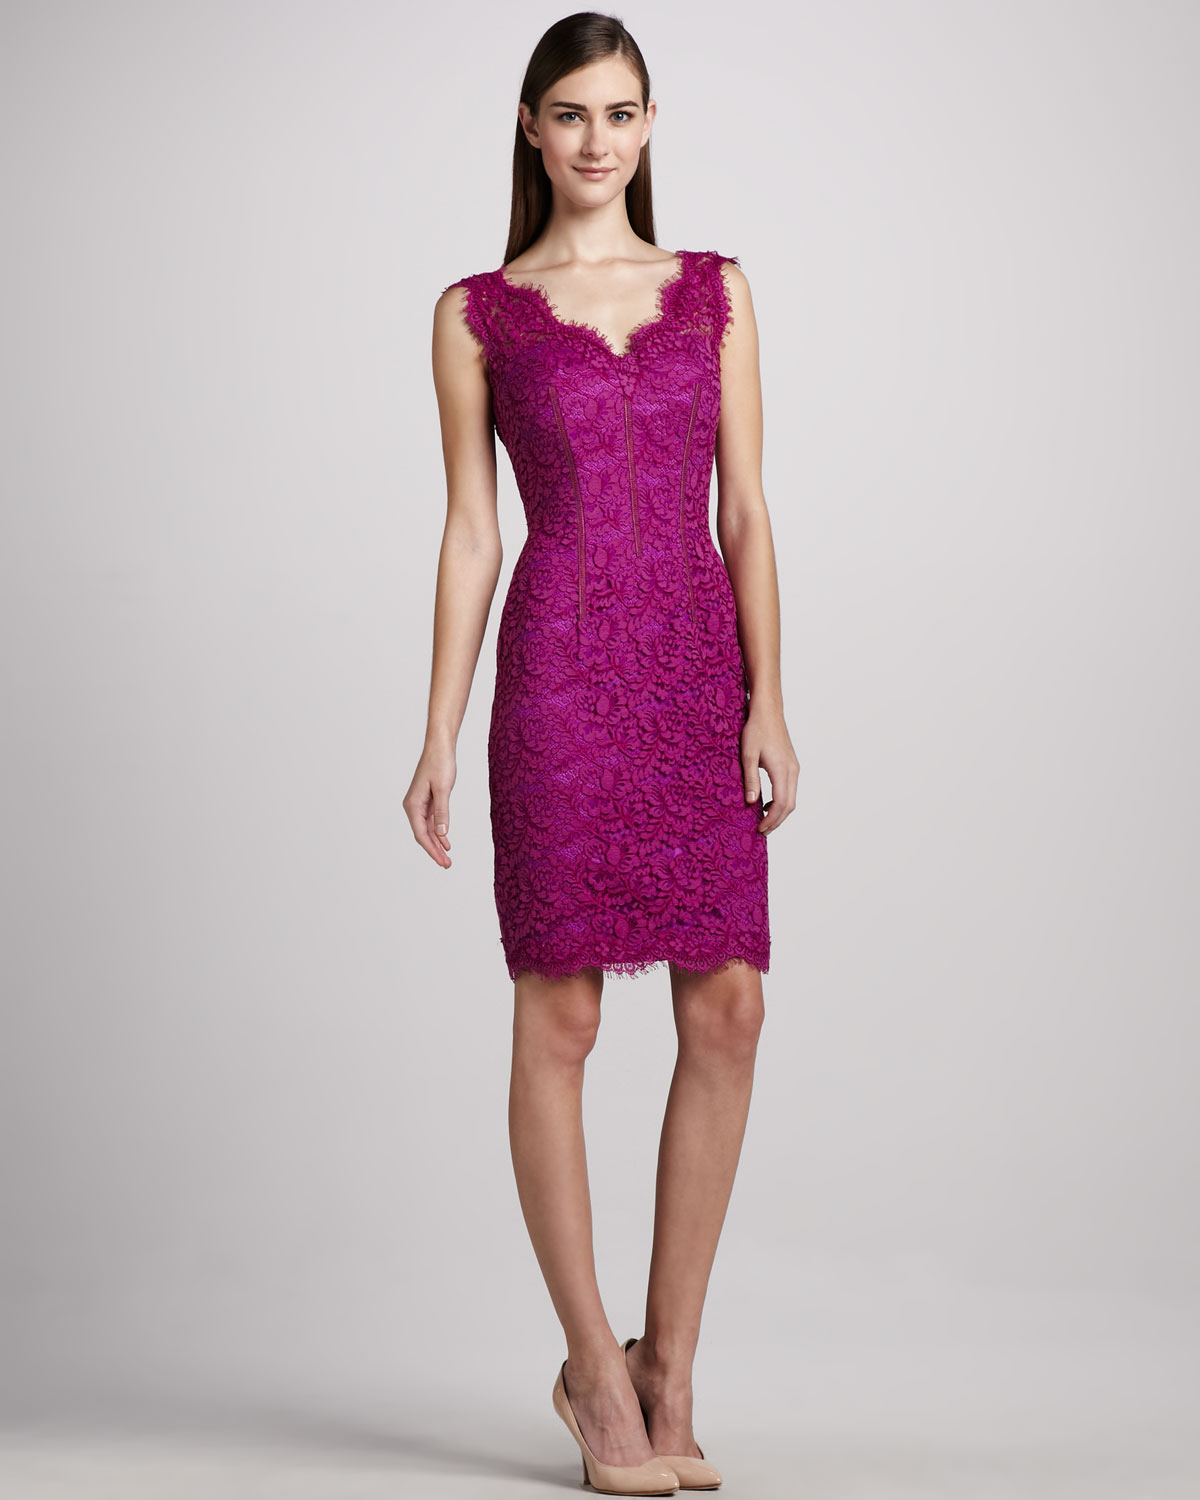 Lyst - Ml monique lhuillier Lace Sheath Dress in Purple